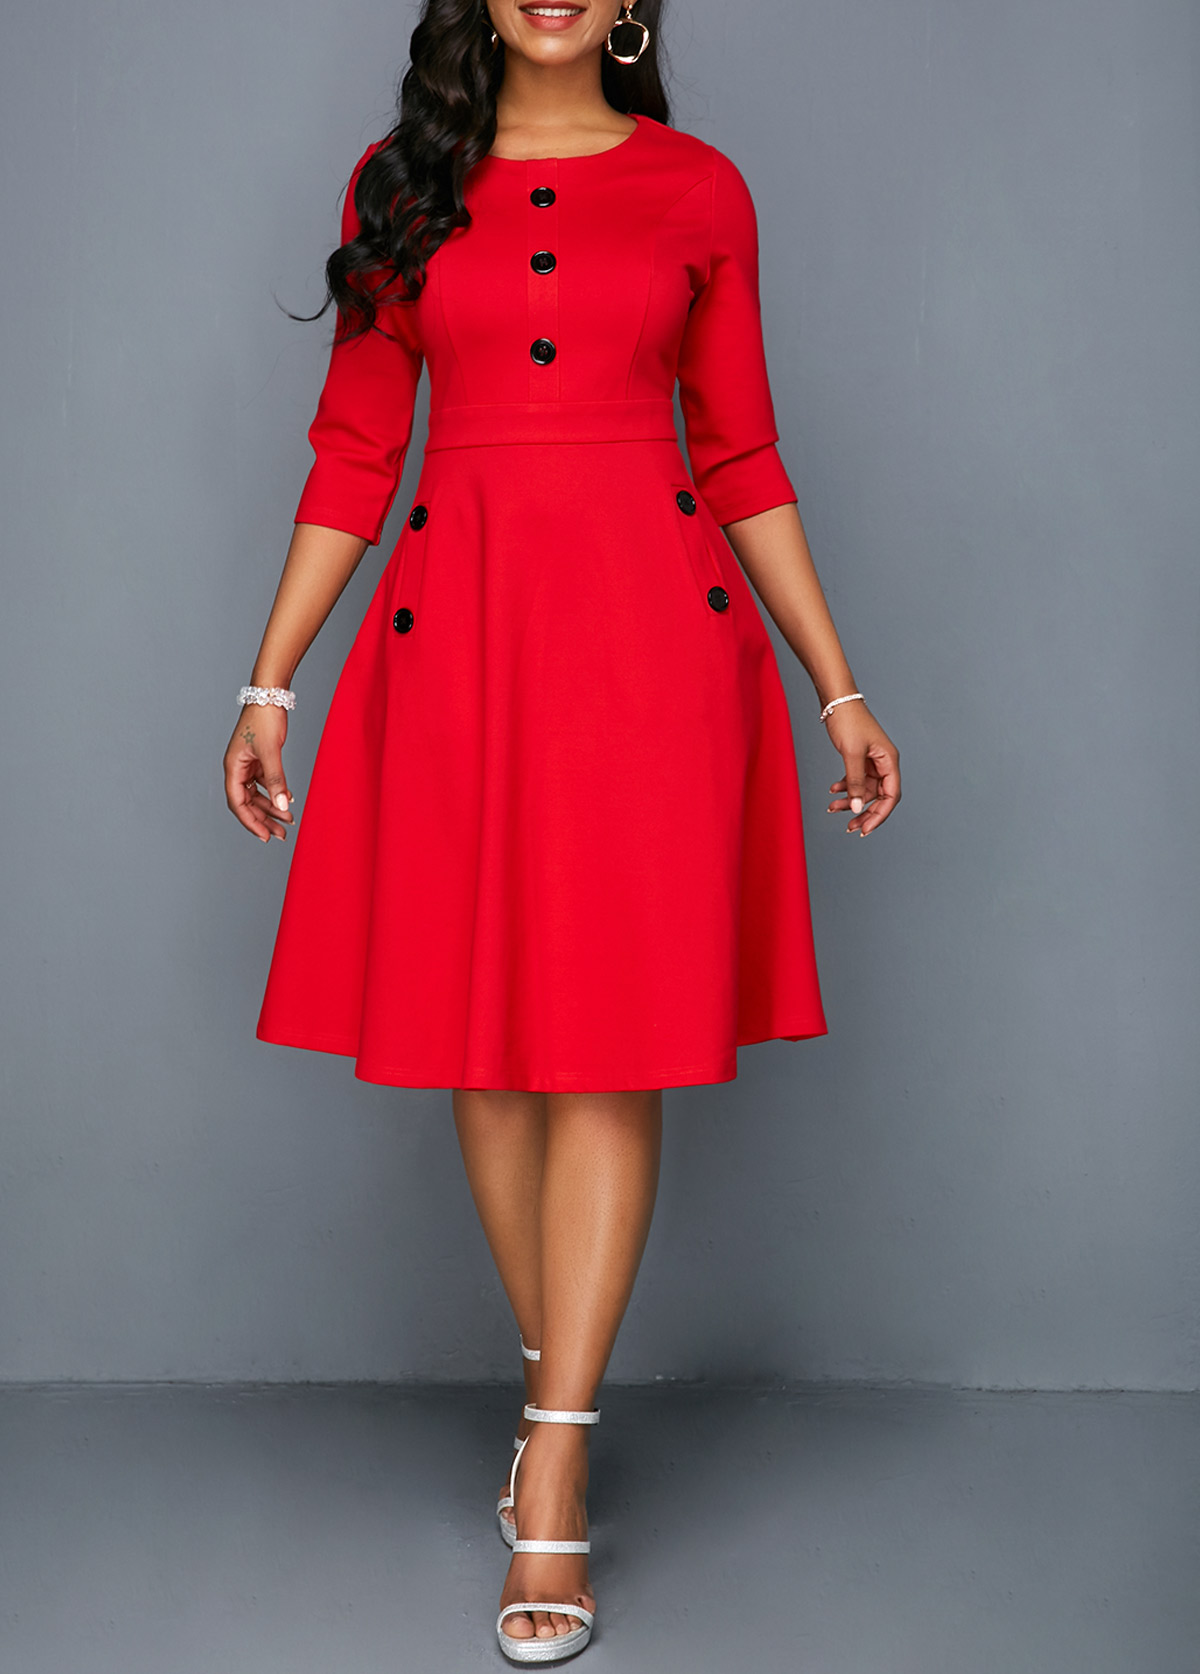 Pocket Red Button Embellished A Line Dress